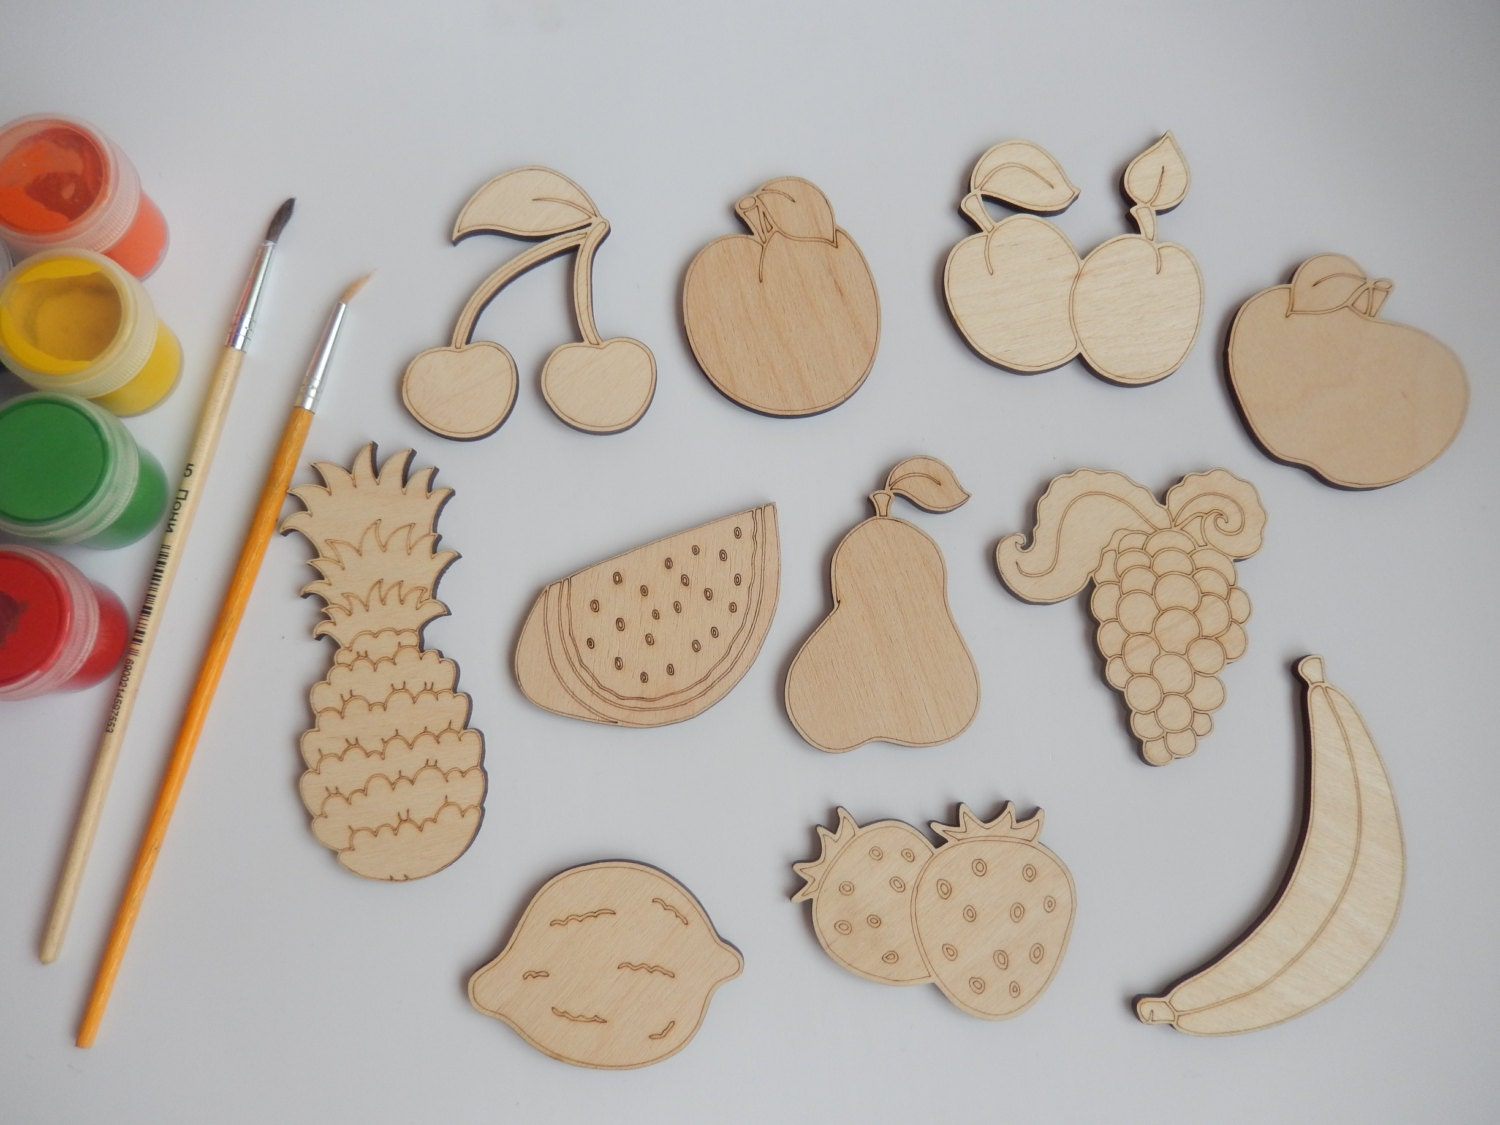 11 fruit wood craft shapes for coloring craft supplies for Craft supplies wooden shapes